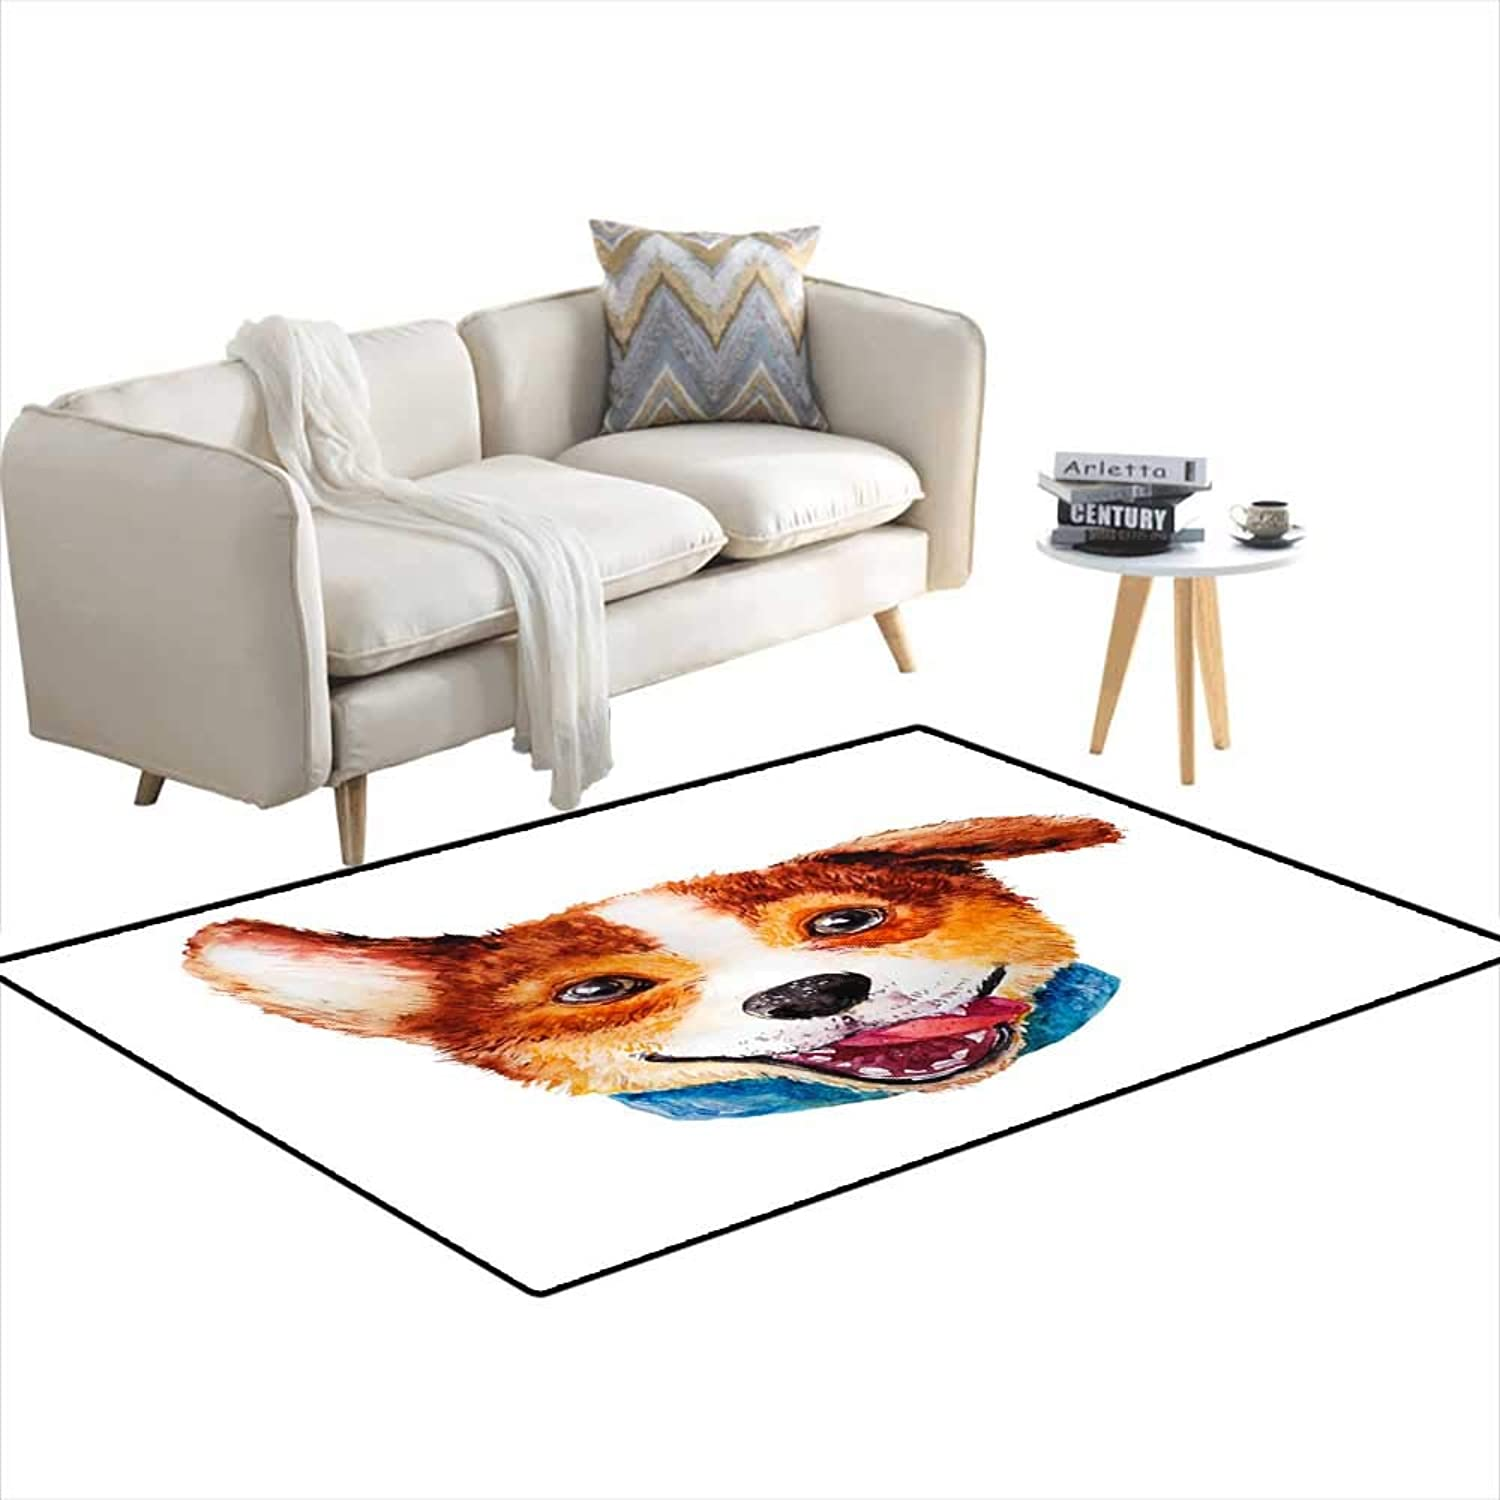 Extra Large Area Rug Watercolor Artistic Corgi Dog Portrait isolateon White backgrounCute pet Animal heahandrawn Corgi Puppy New Year Symbol 3'x19'